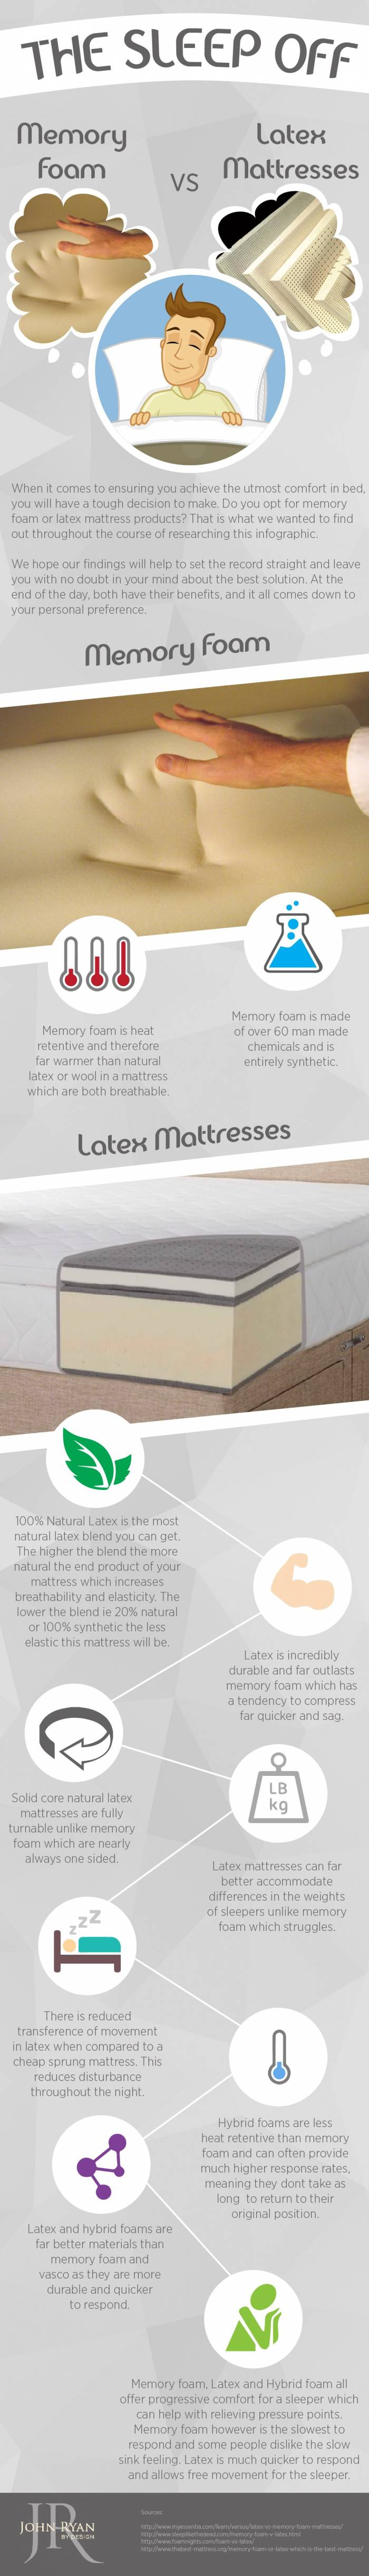 Memory-foam-vs-latex-mattresses